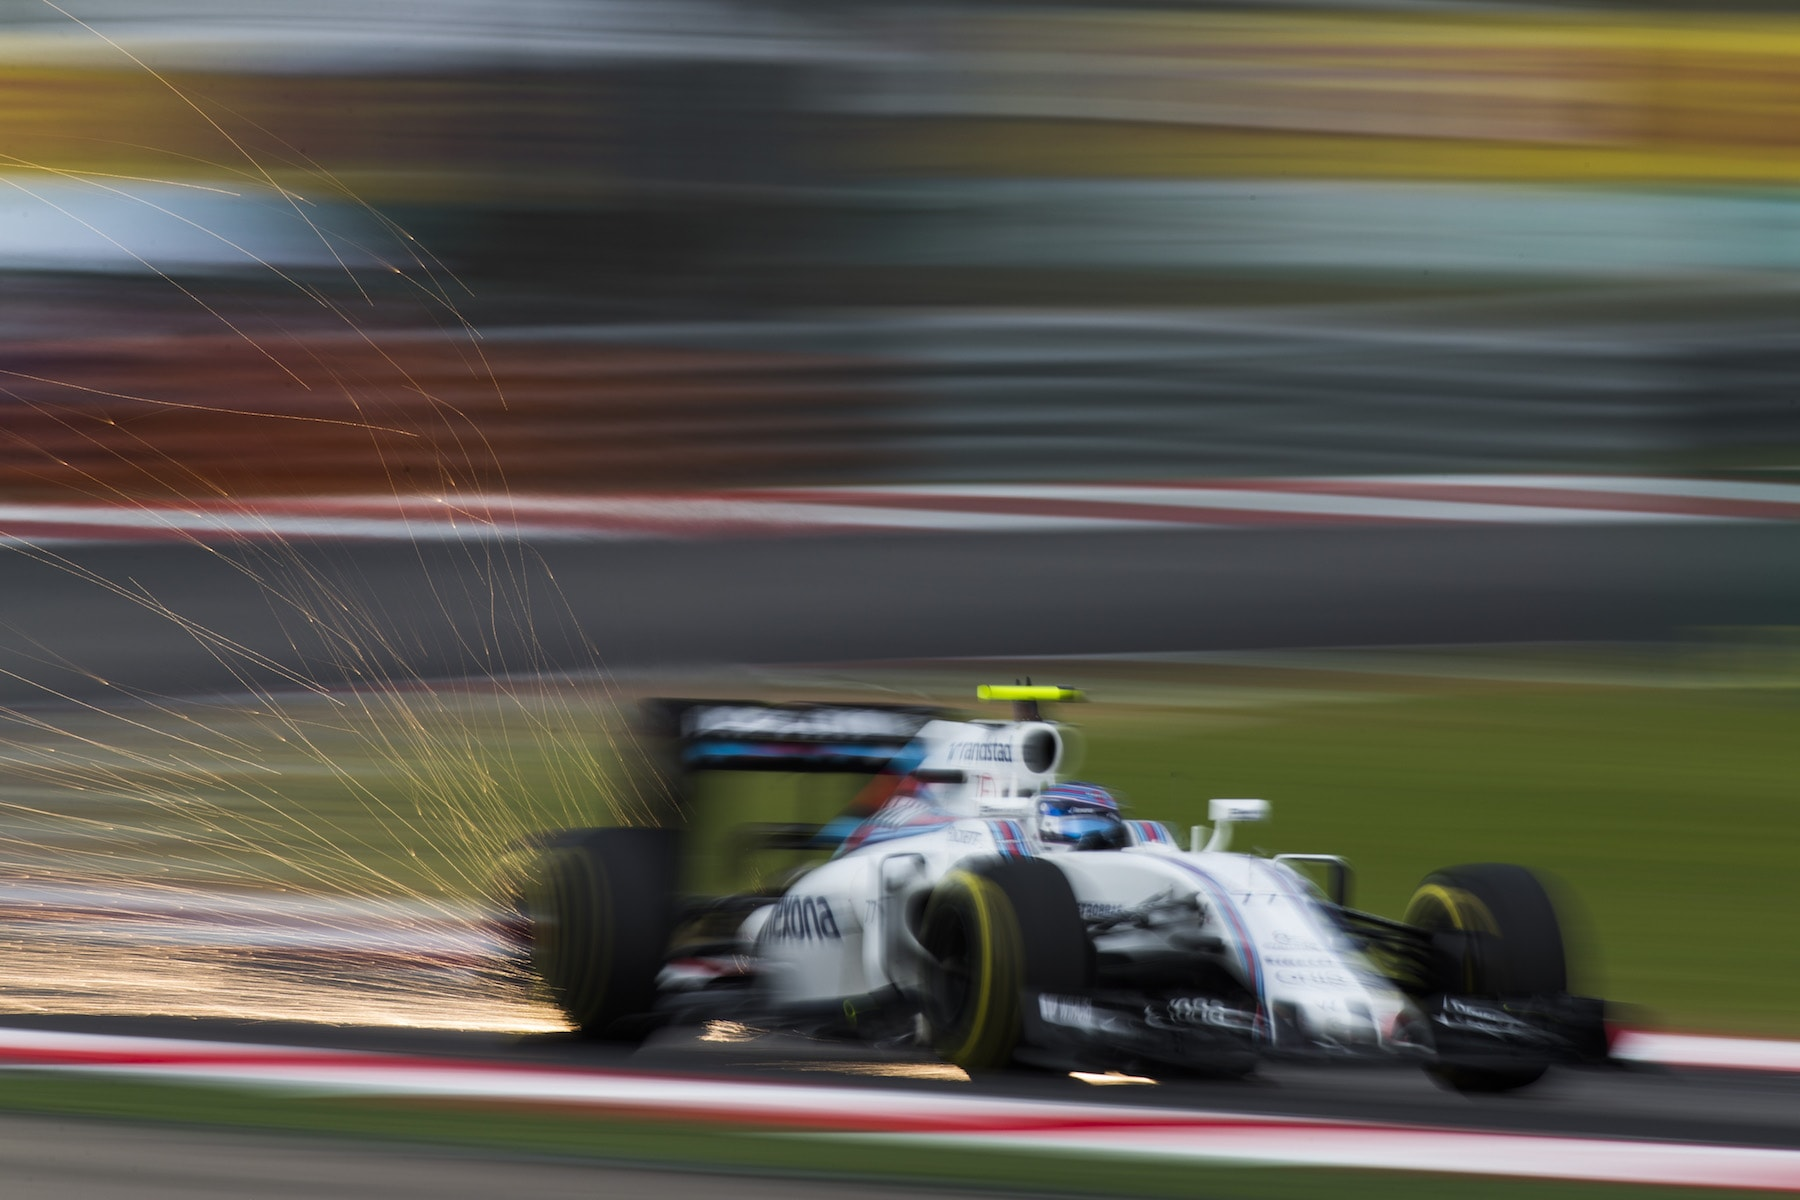 Salracing - Valtteri Bottas | Williams Martini Racing